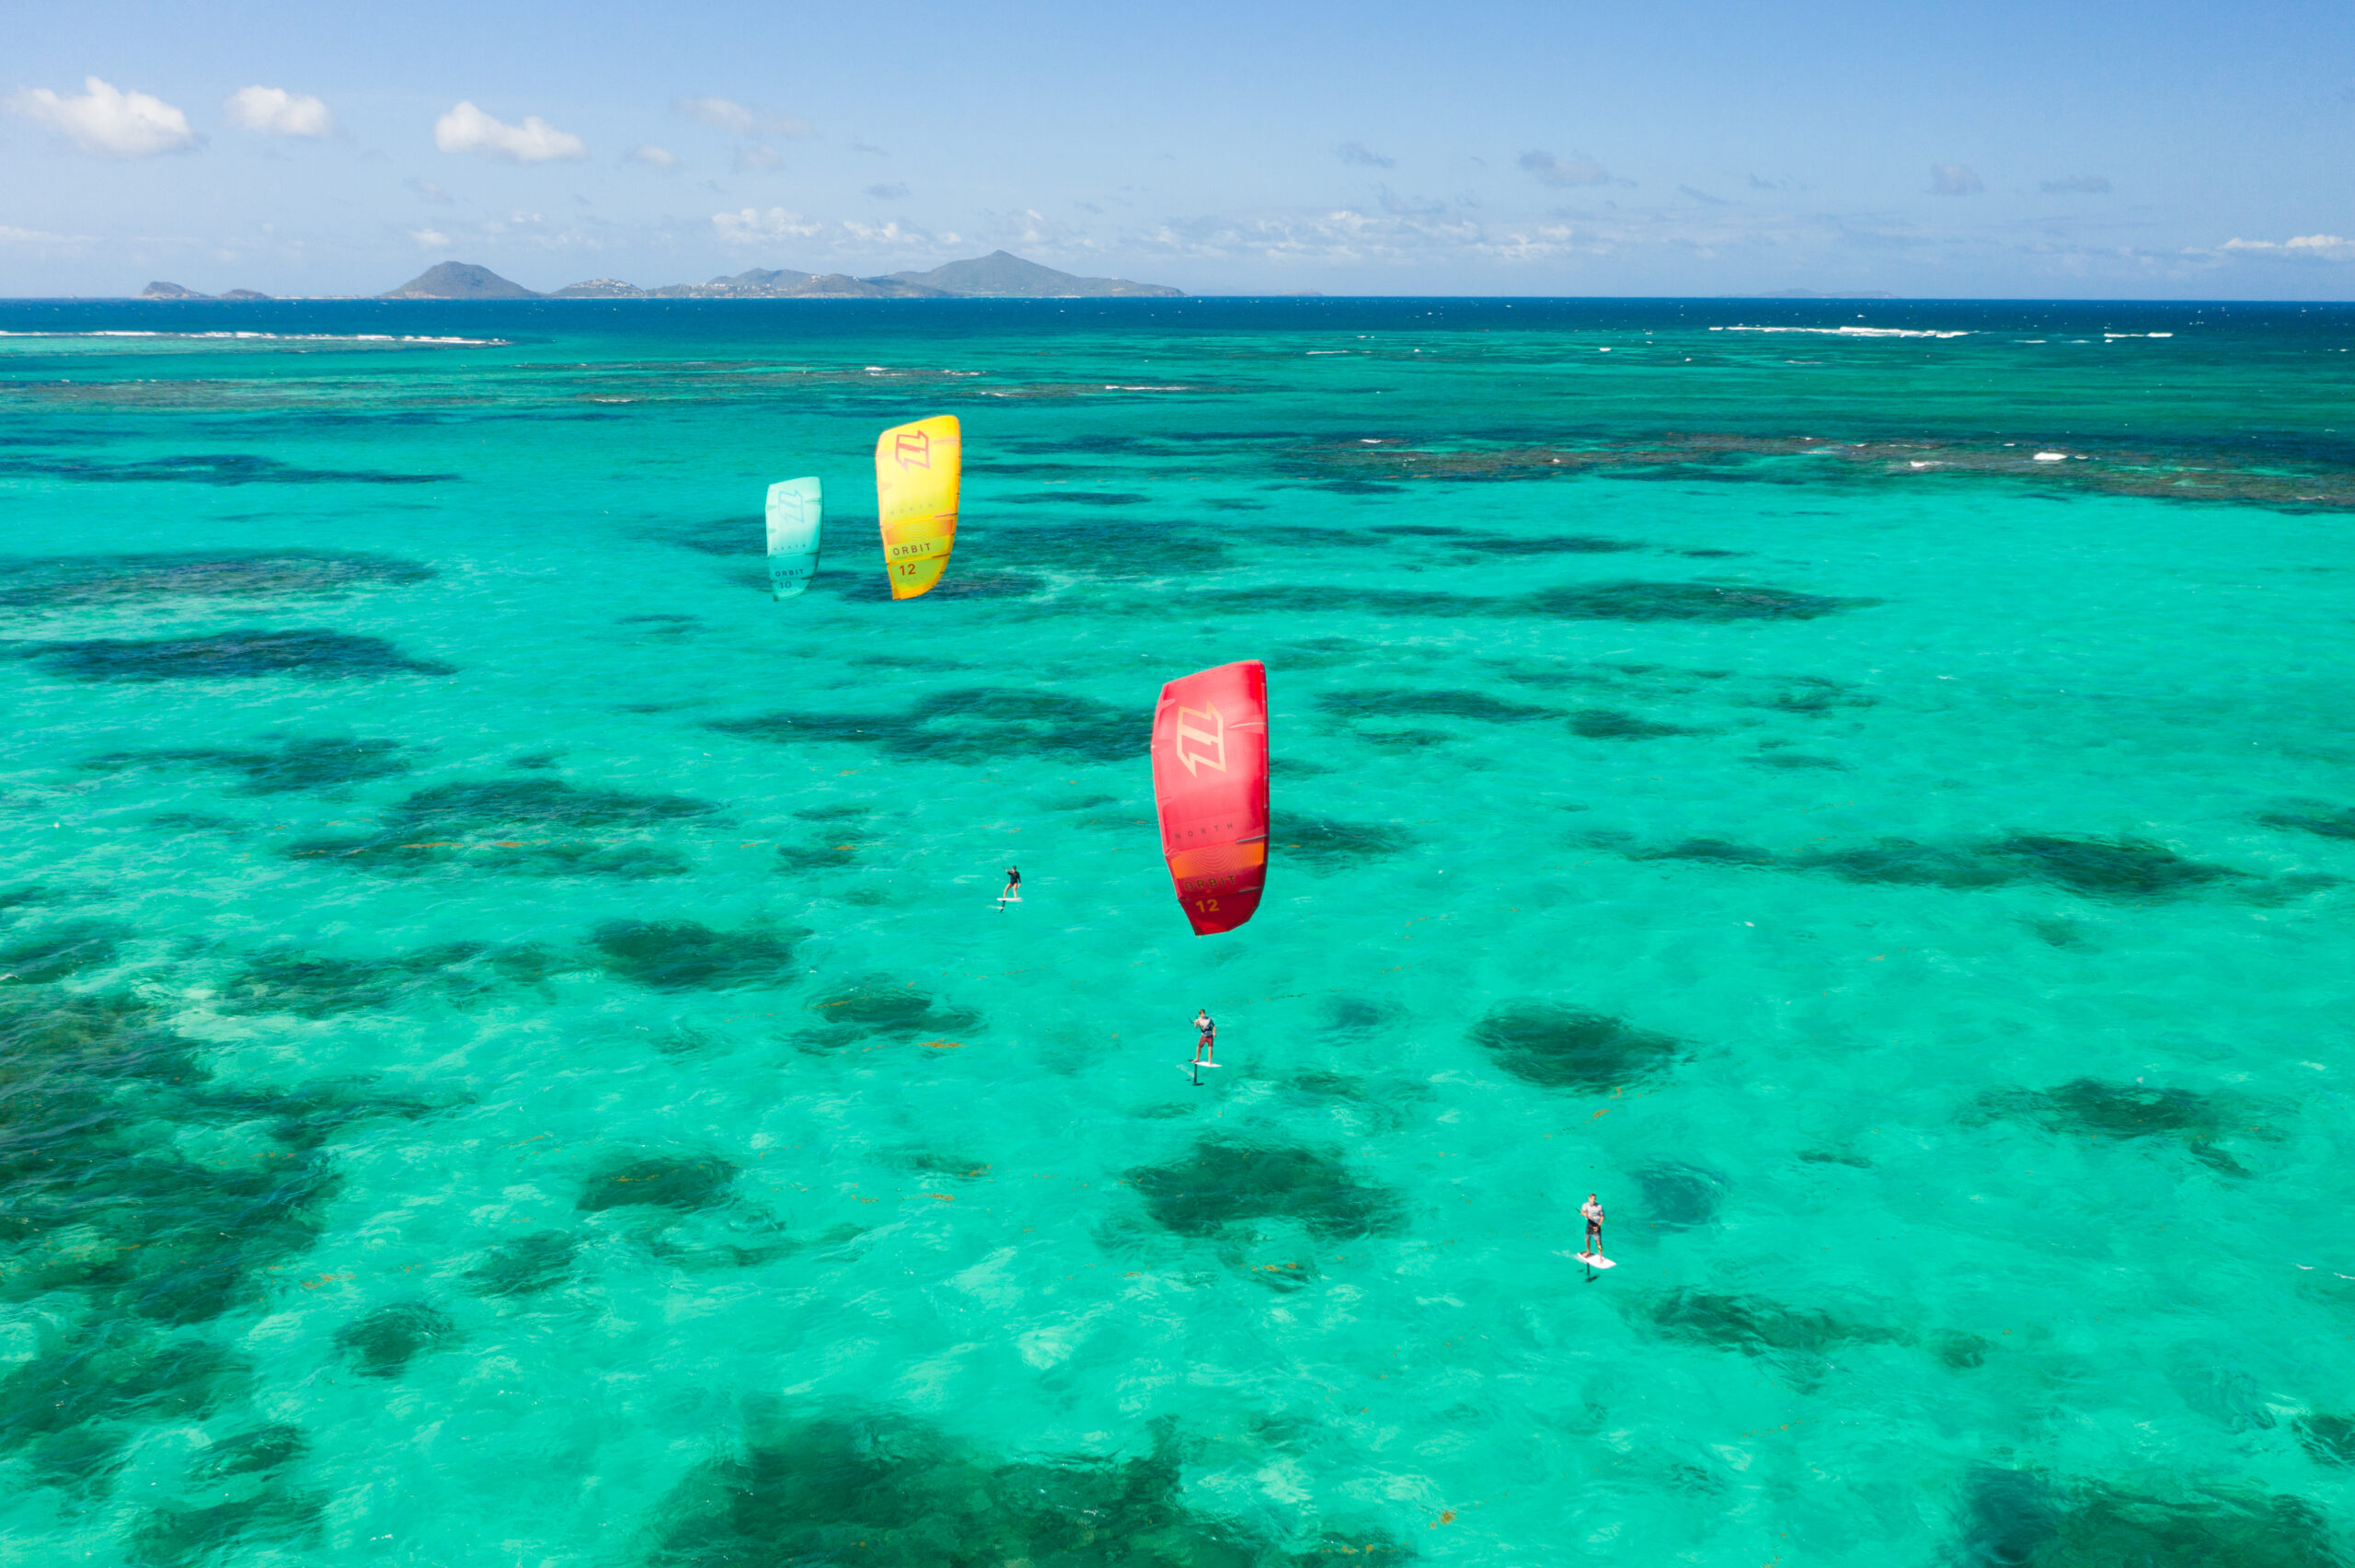 Kite Camp Caraibi